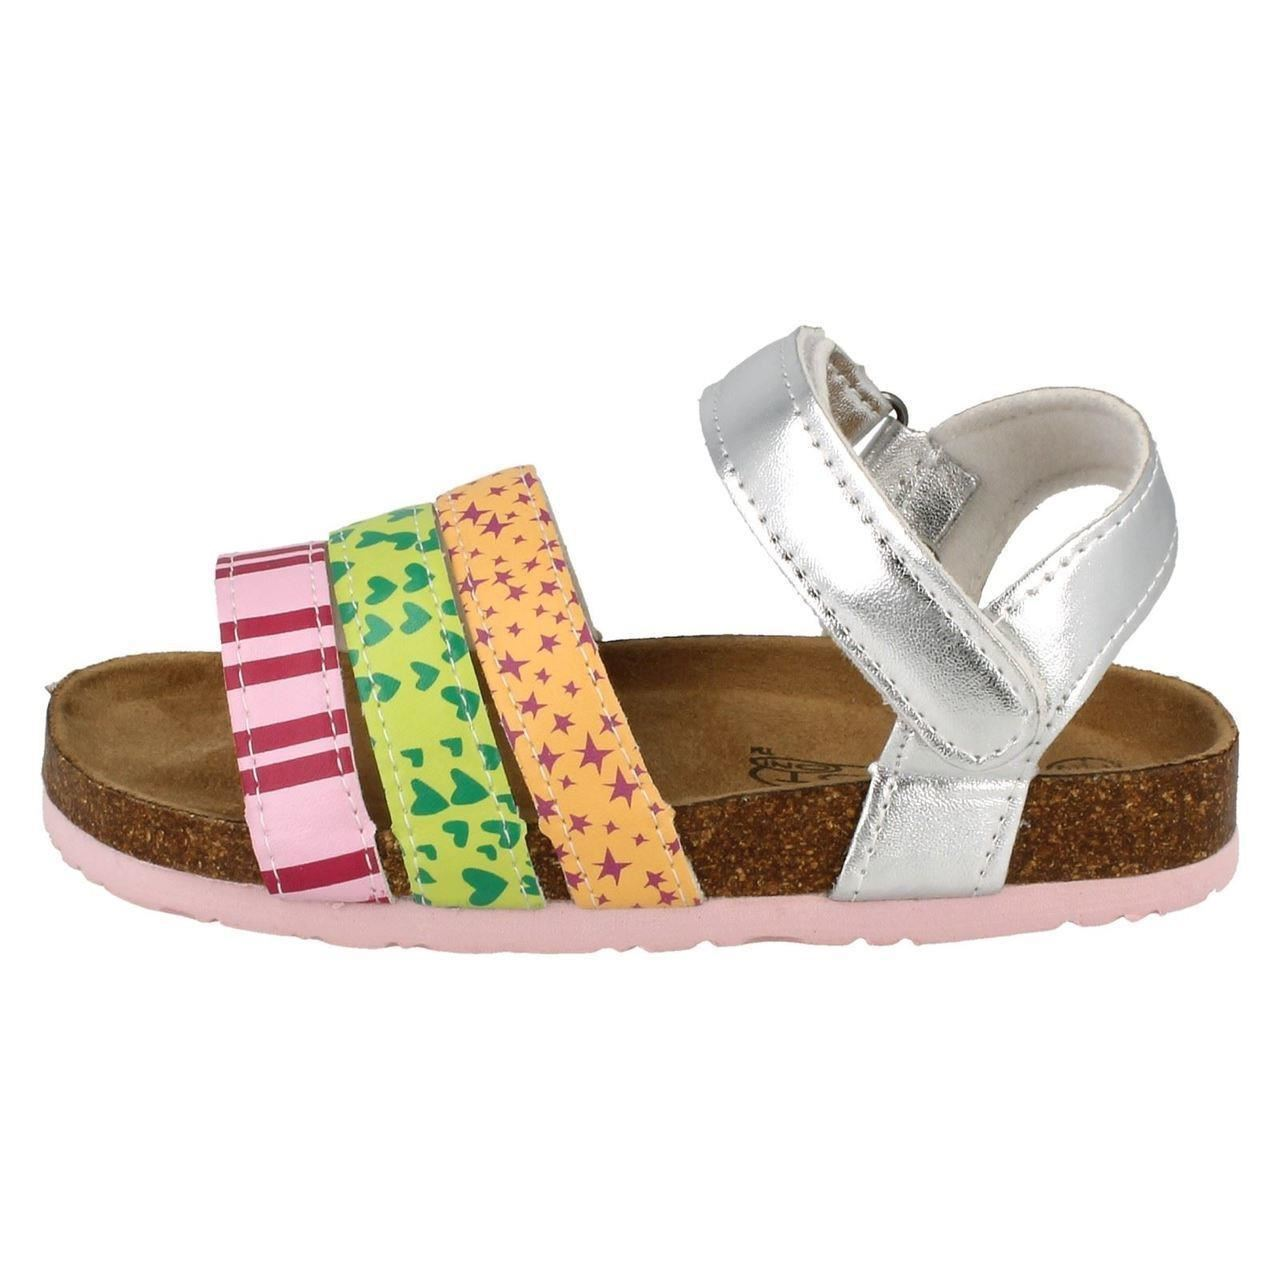 Girls Spot On H0164 Patterned Sandals The Style ~ K